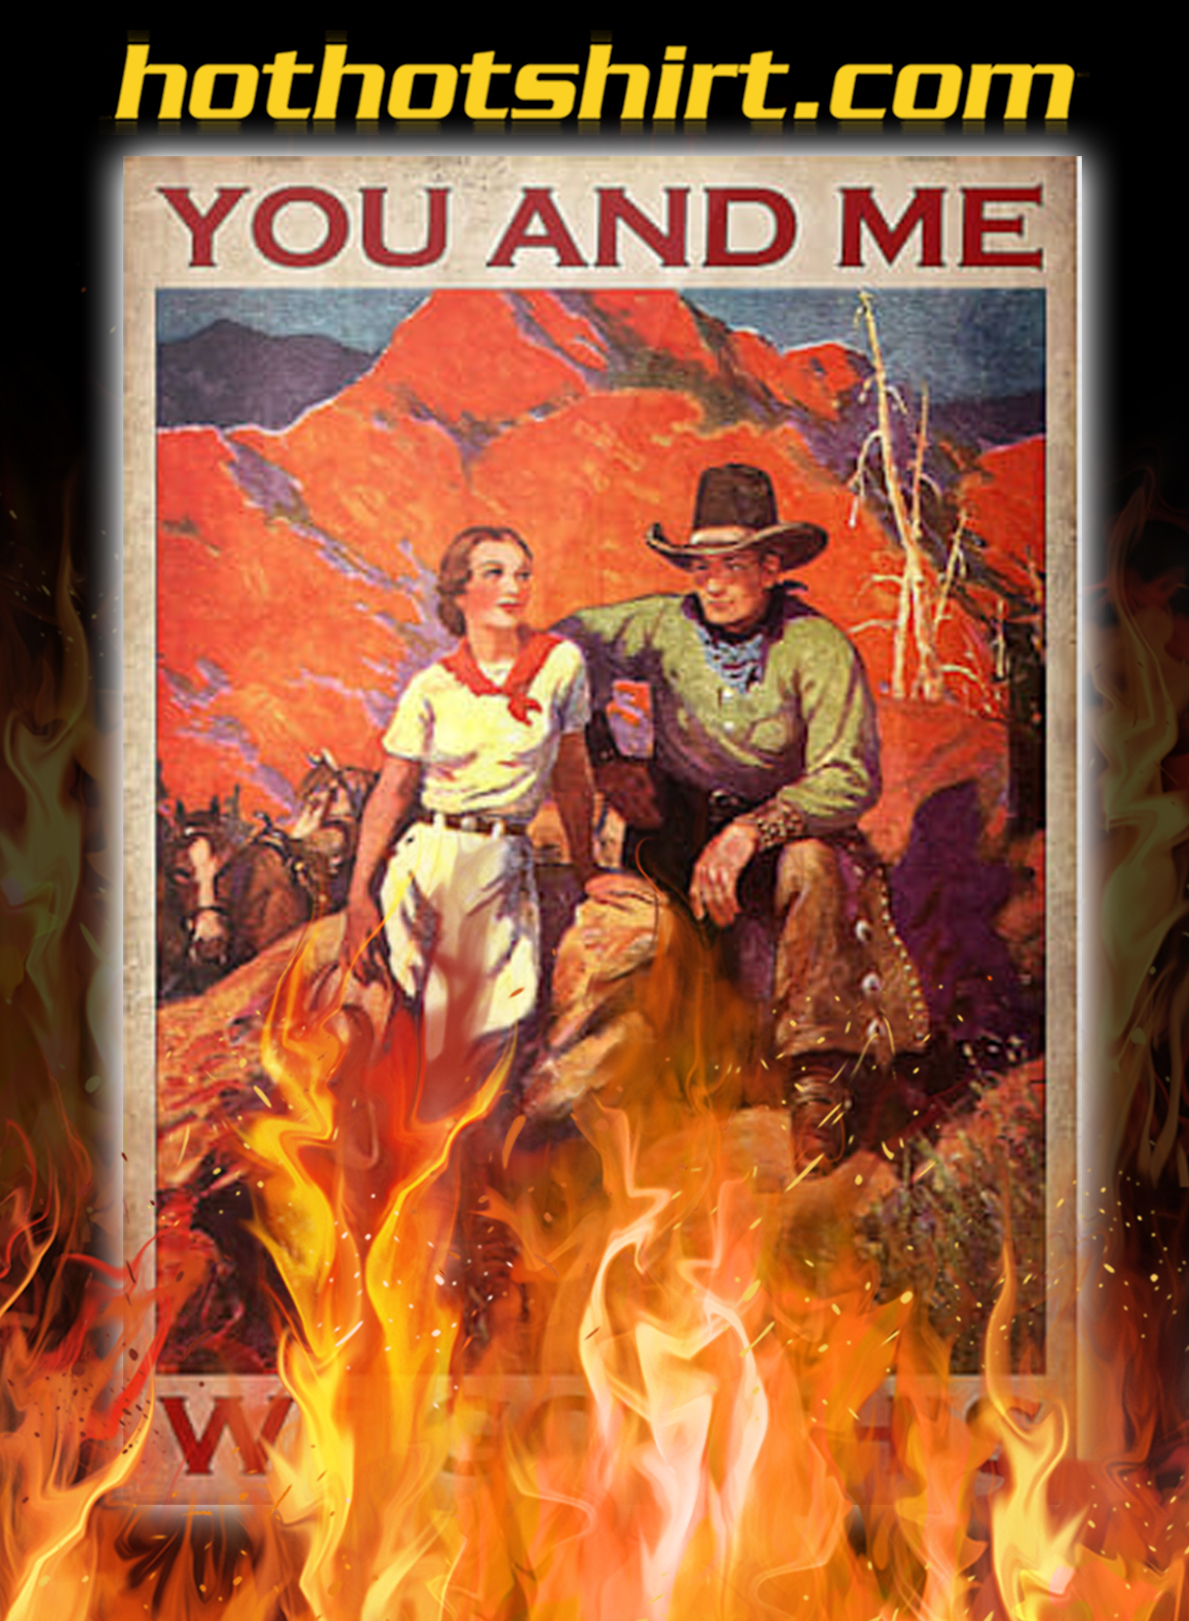 Vintage Cowboy Couple Poster You & Me We Got This Poster - A1